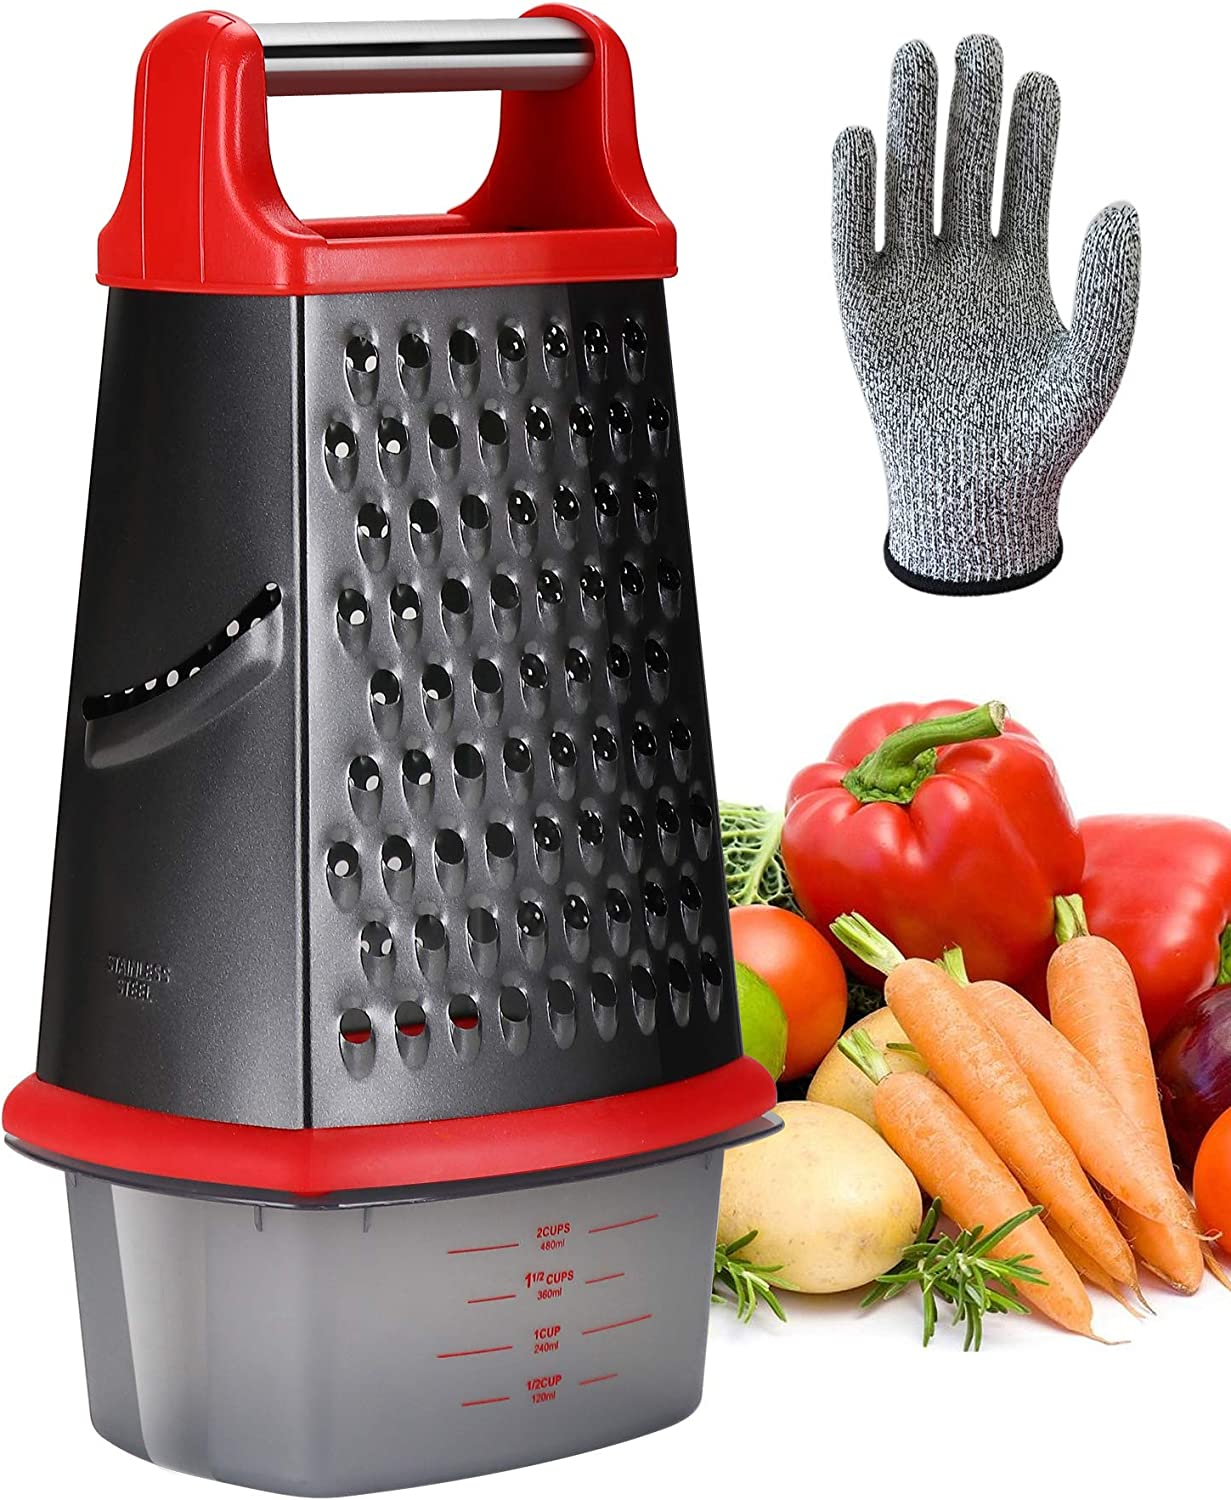 Ourokhome Stainless Steel Box Grater - 4 Side 10 inch Cheese Grater with a Container Box and Resistant Glove (Red and Black)